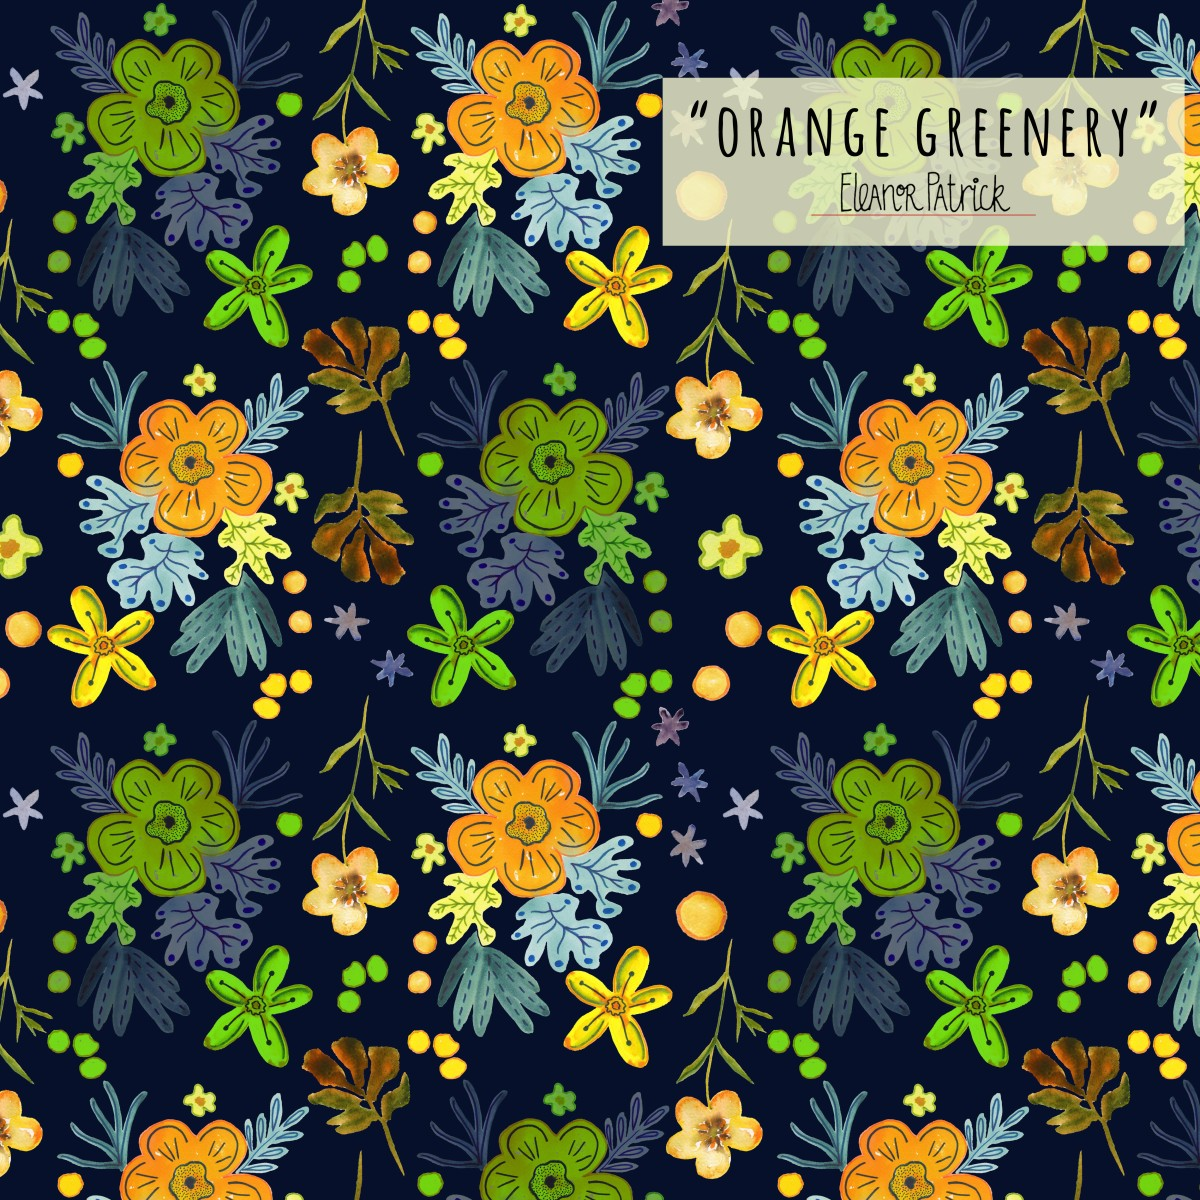 orange greenery sample